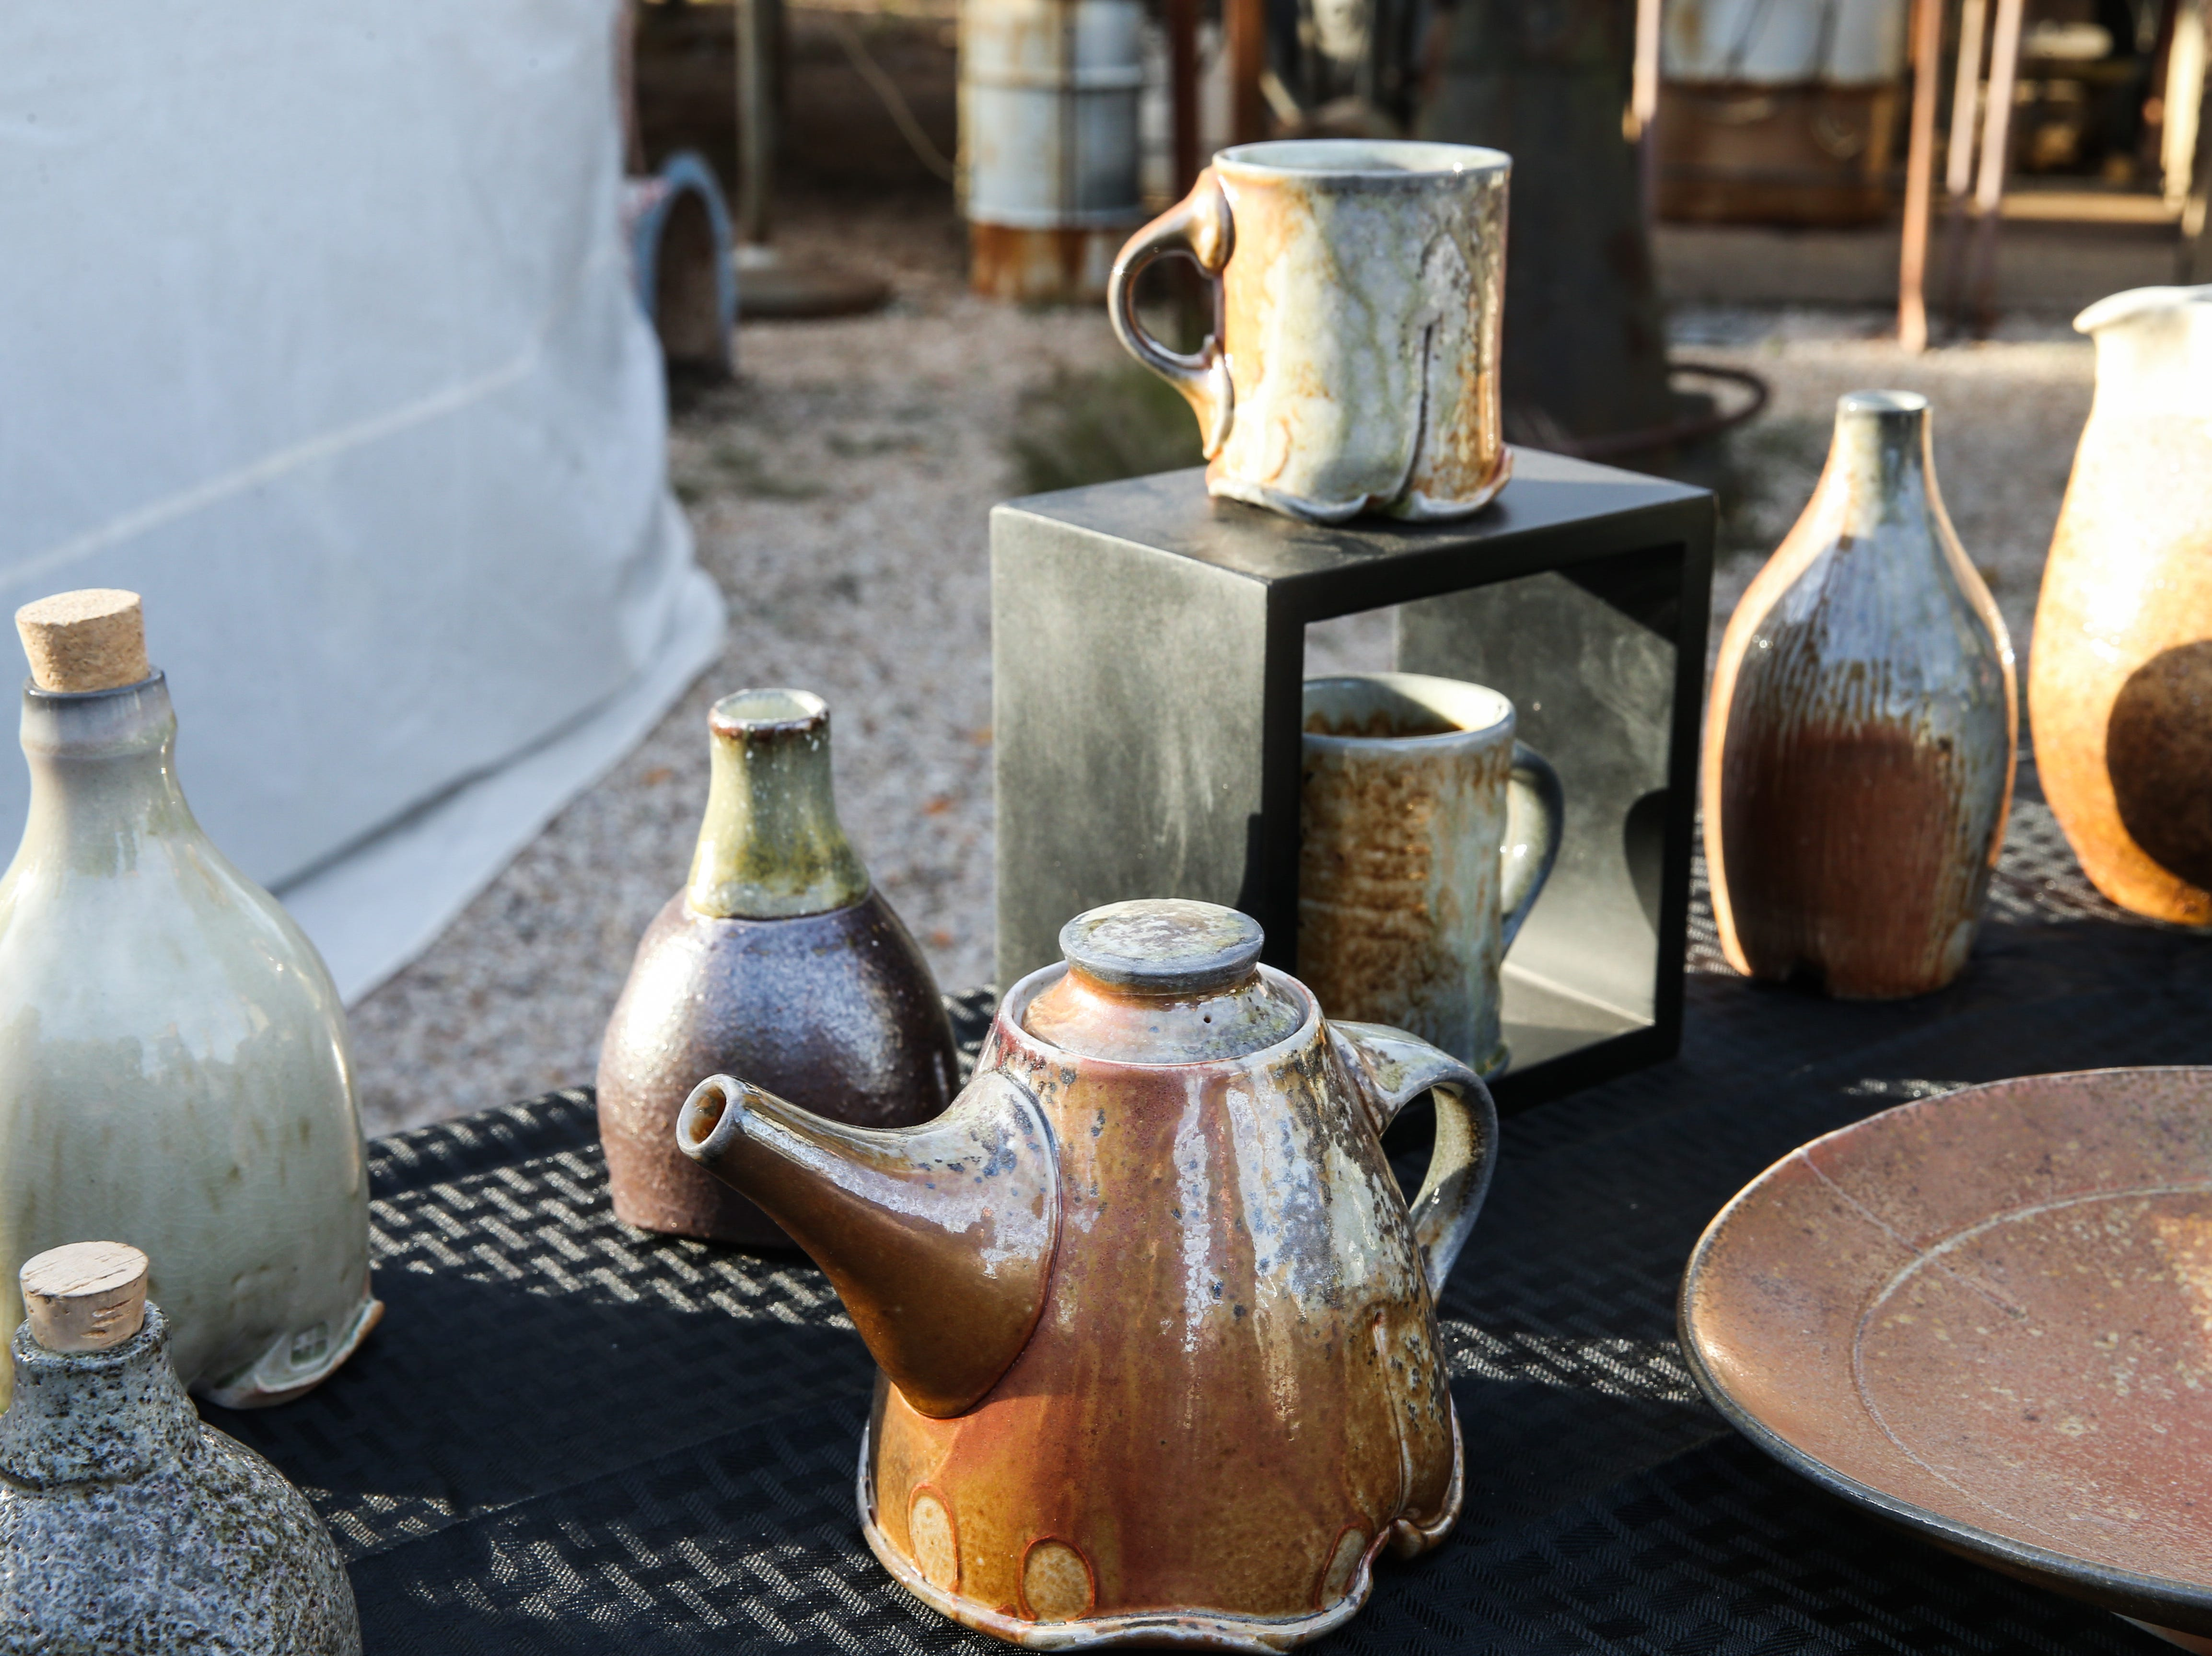 Pottery by Horacio Casillas on display during the Thanksgiving Open House Friday, Nov. 23, 2018, at the Chicken Farm Art Center.